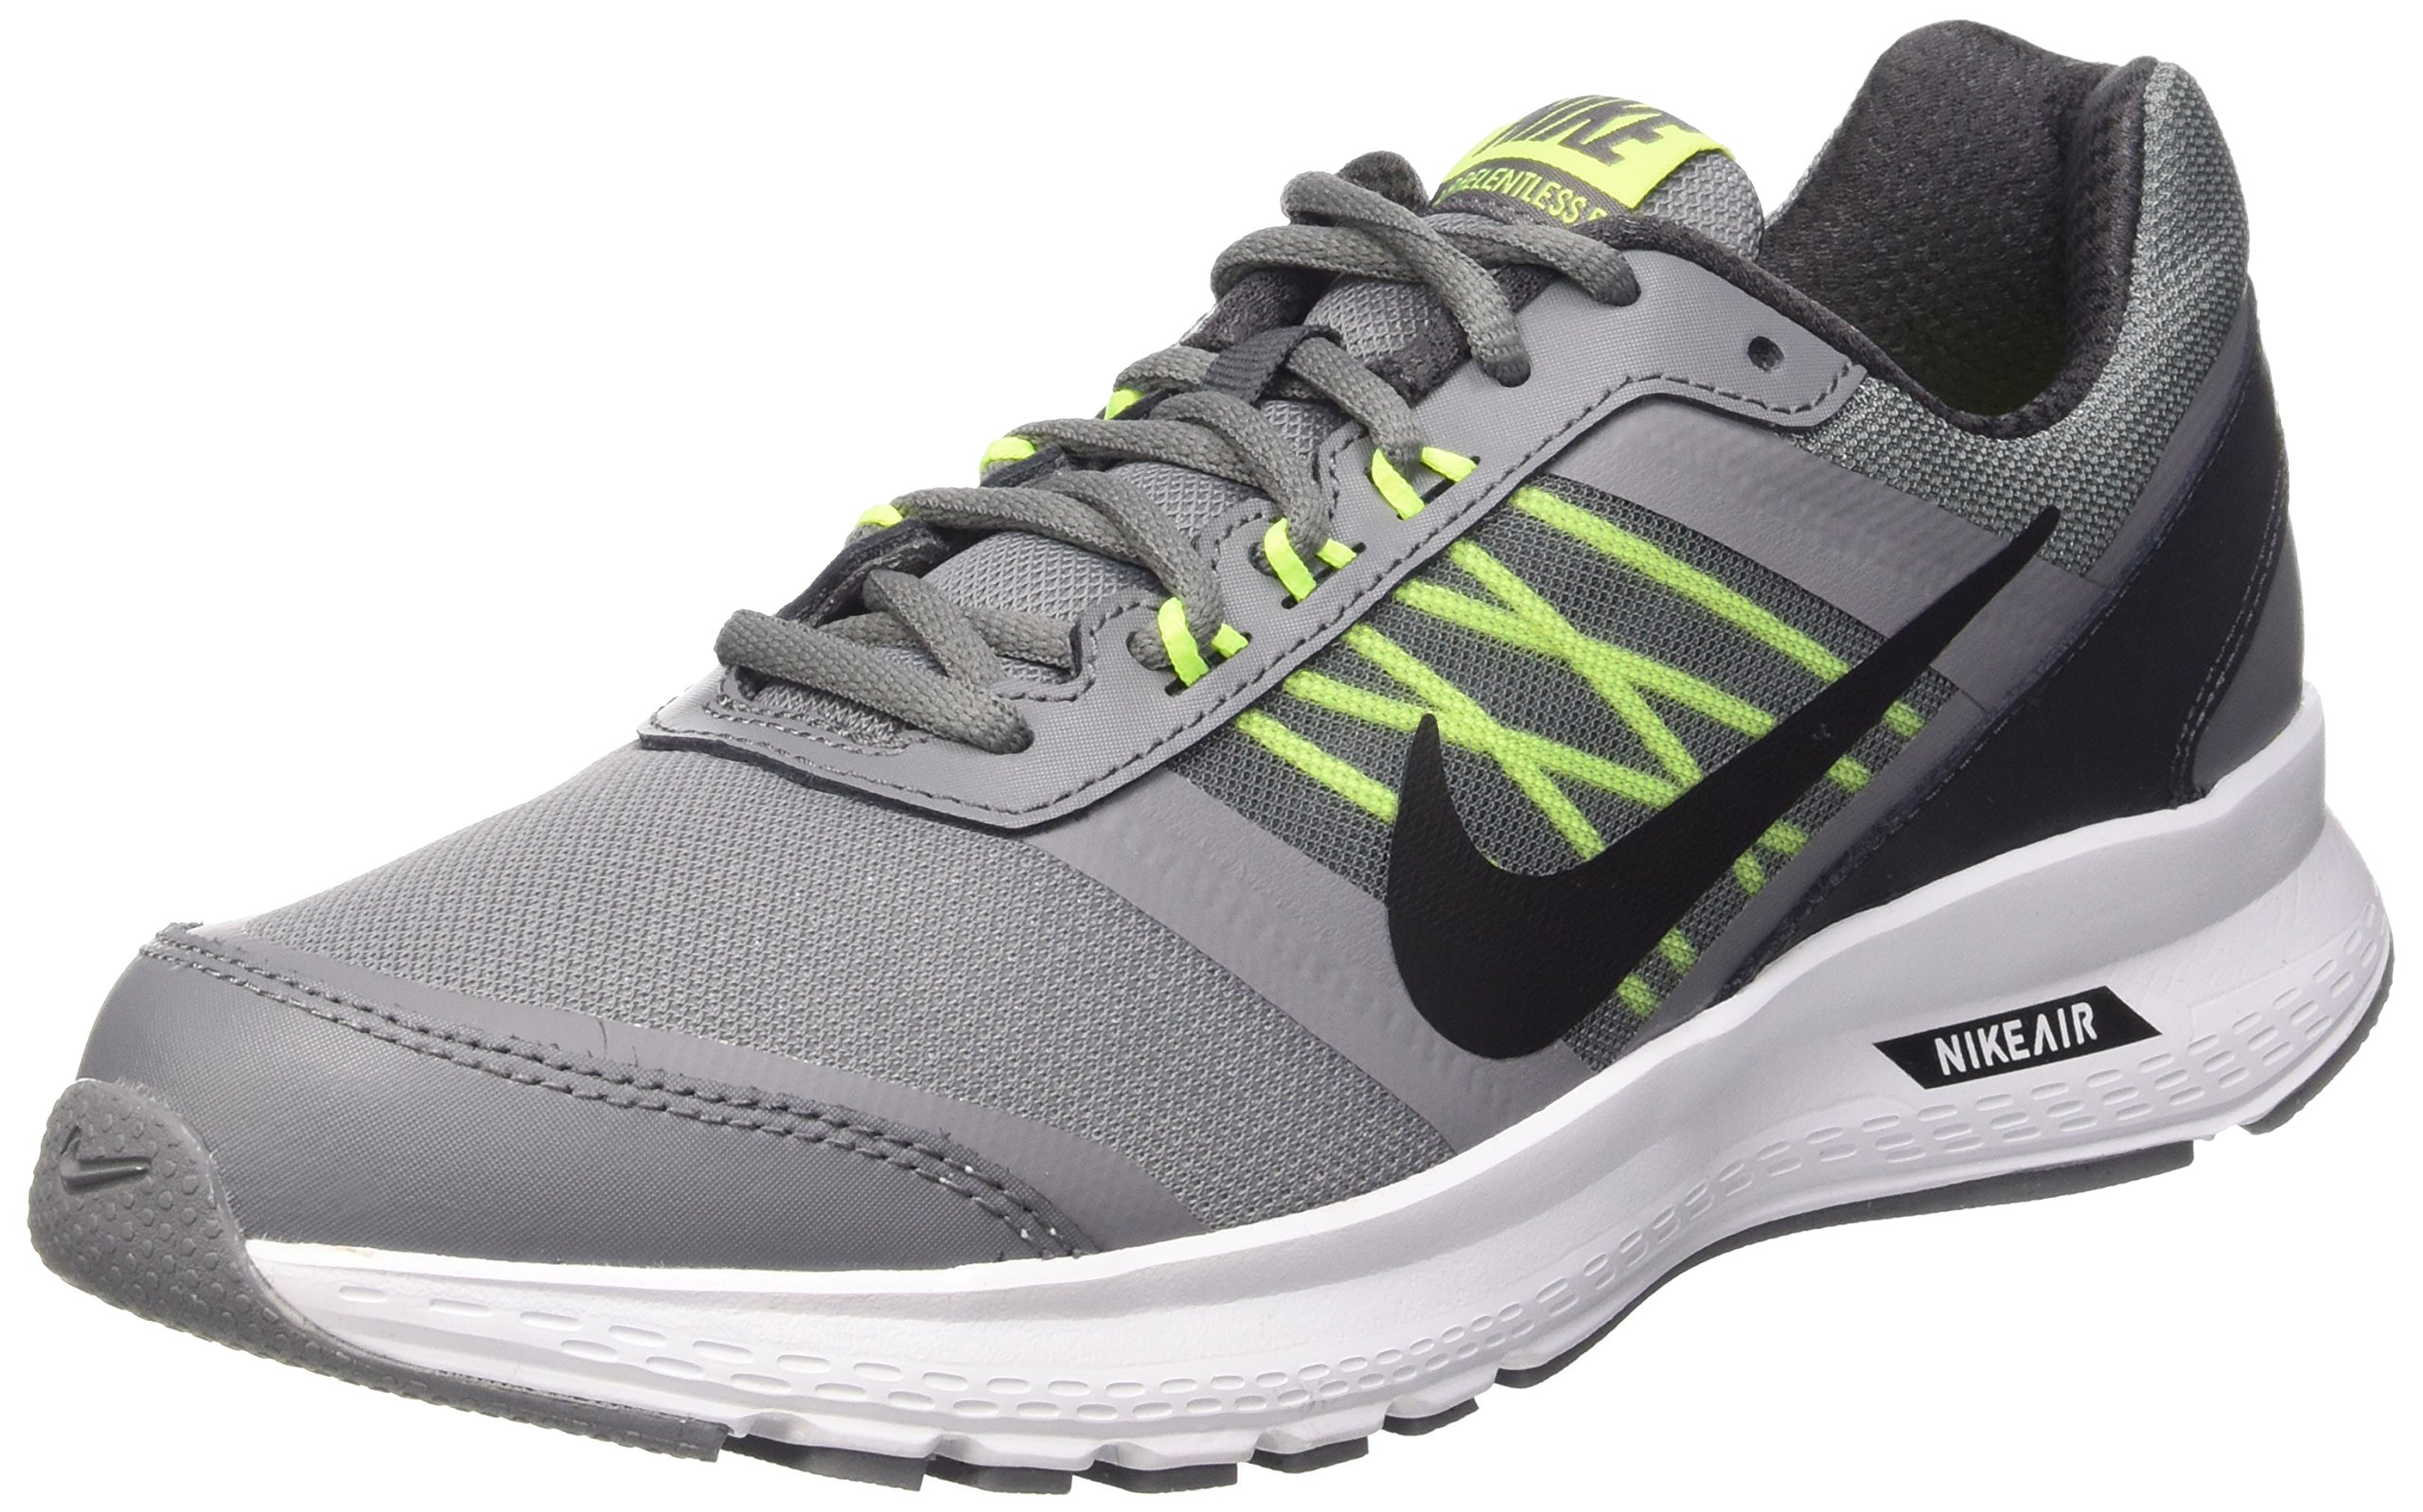 c47d387c157 Galleon - Nike Men s Air Relentless 5 Cool Grey Black Anthracite Wht Running  Shoe 9.5 Men US